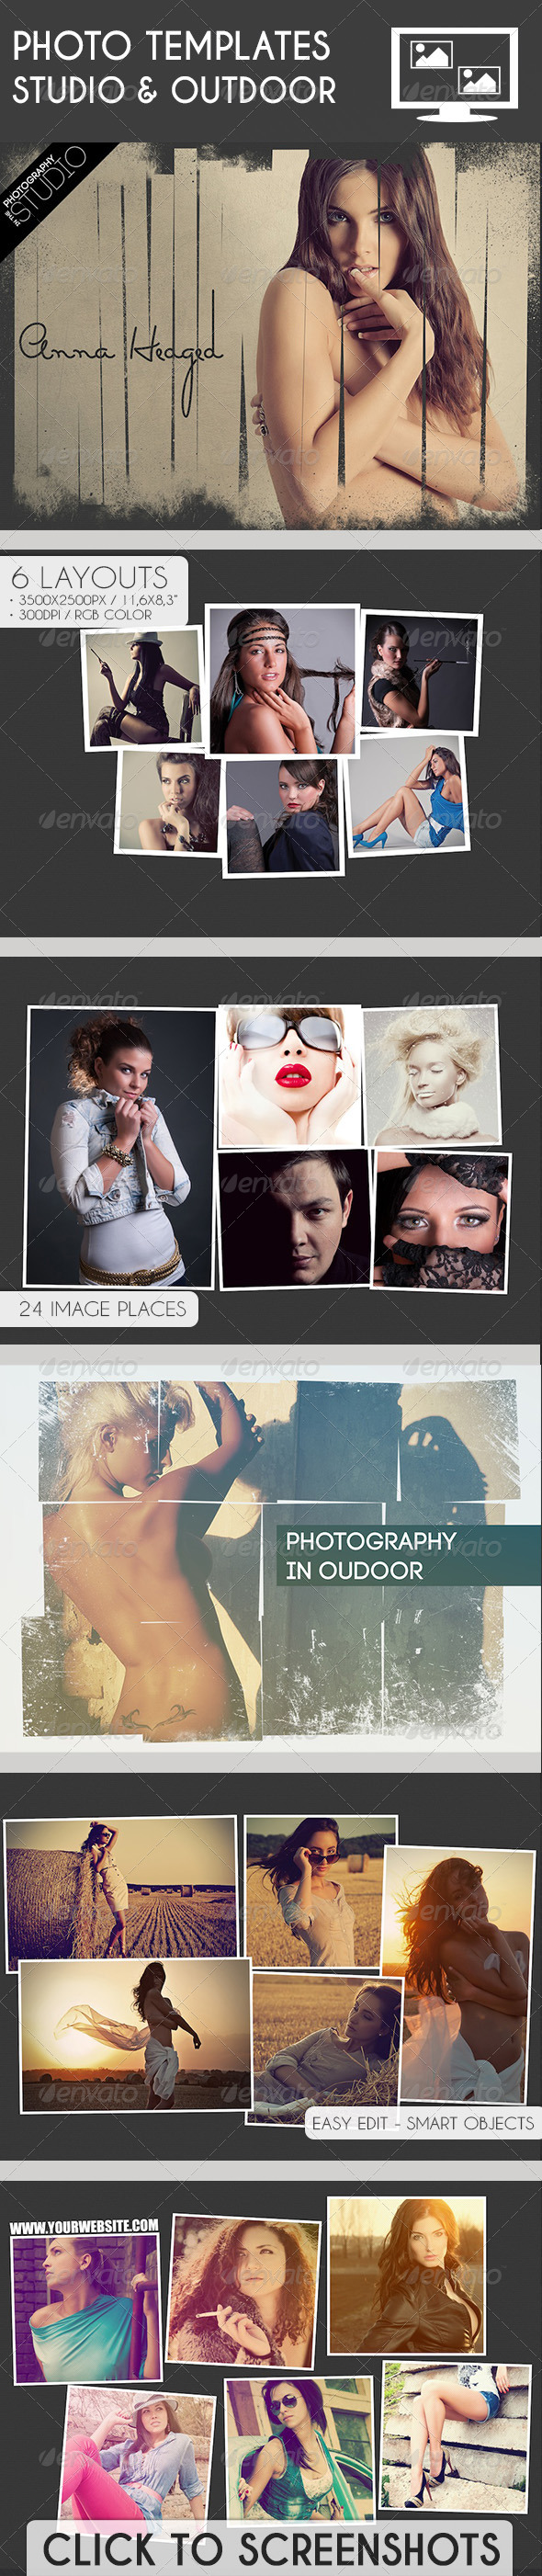 GraphicRiver Photo Templates Studio & Outdoor 7600852